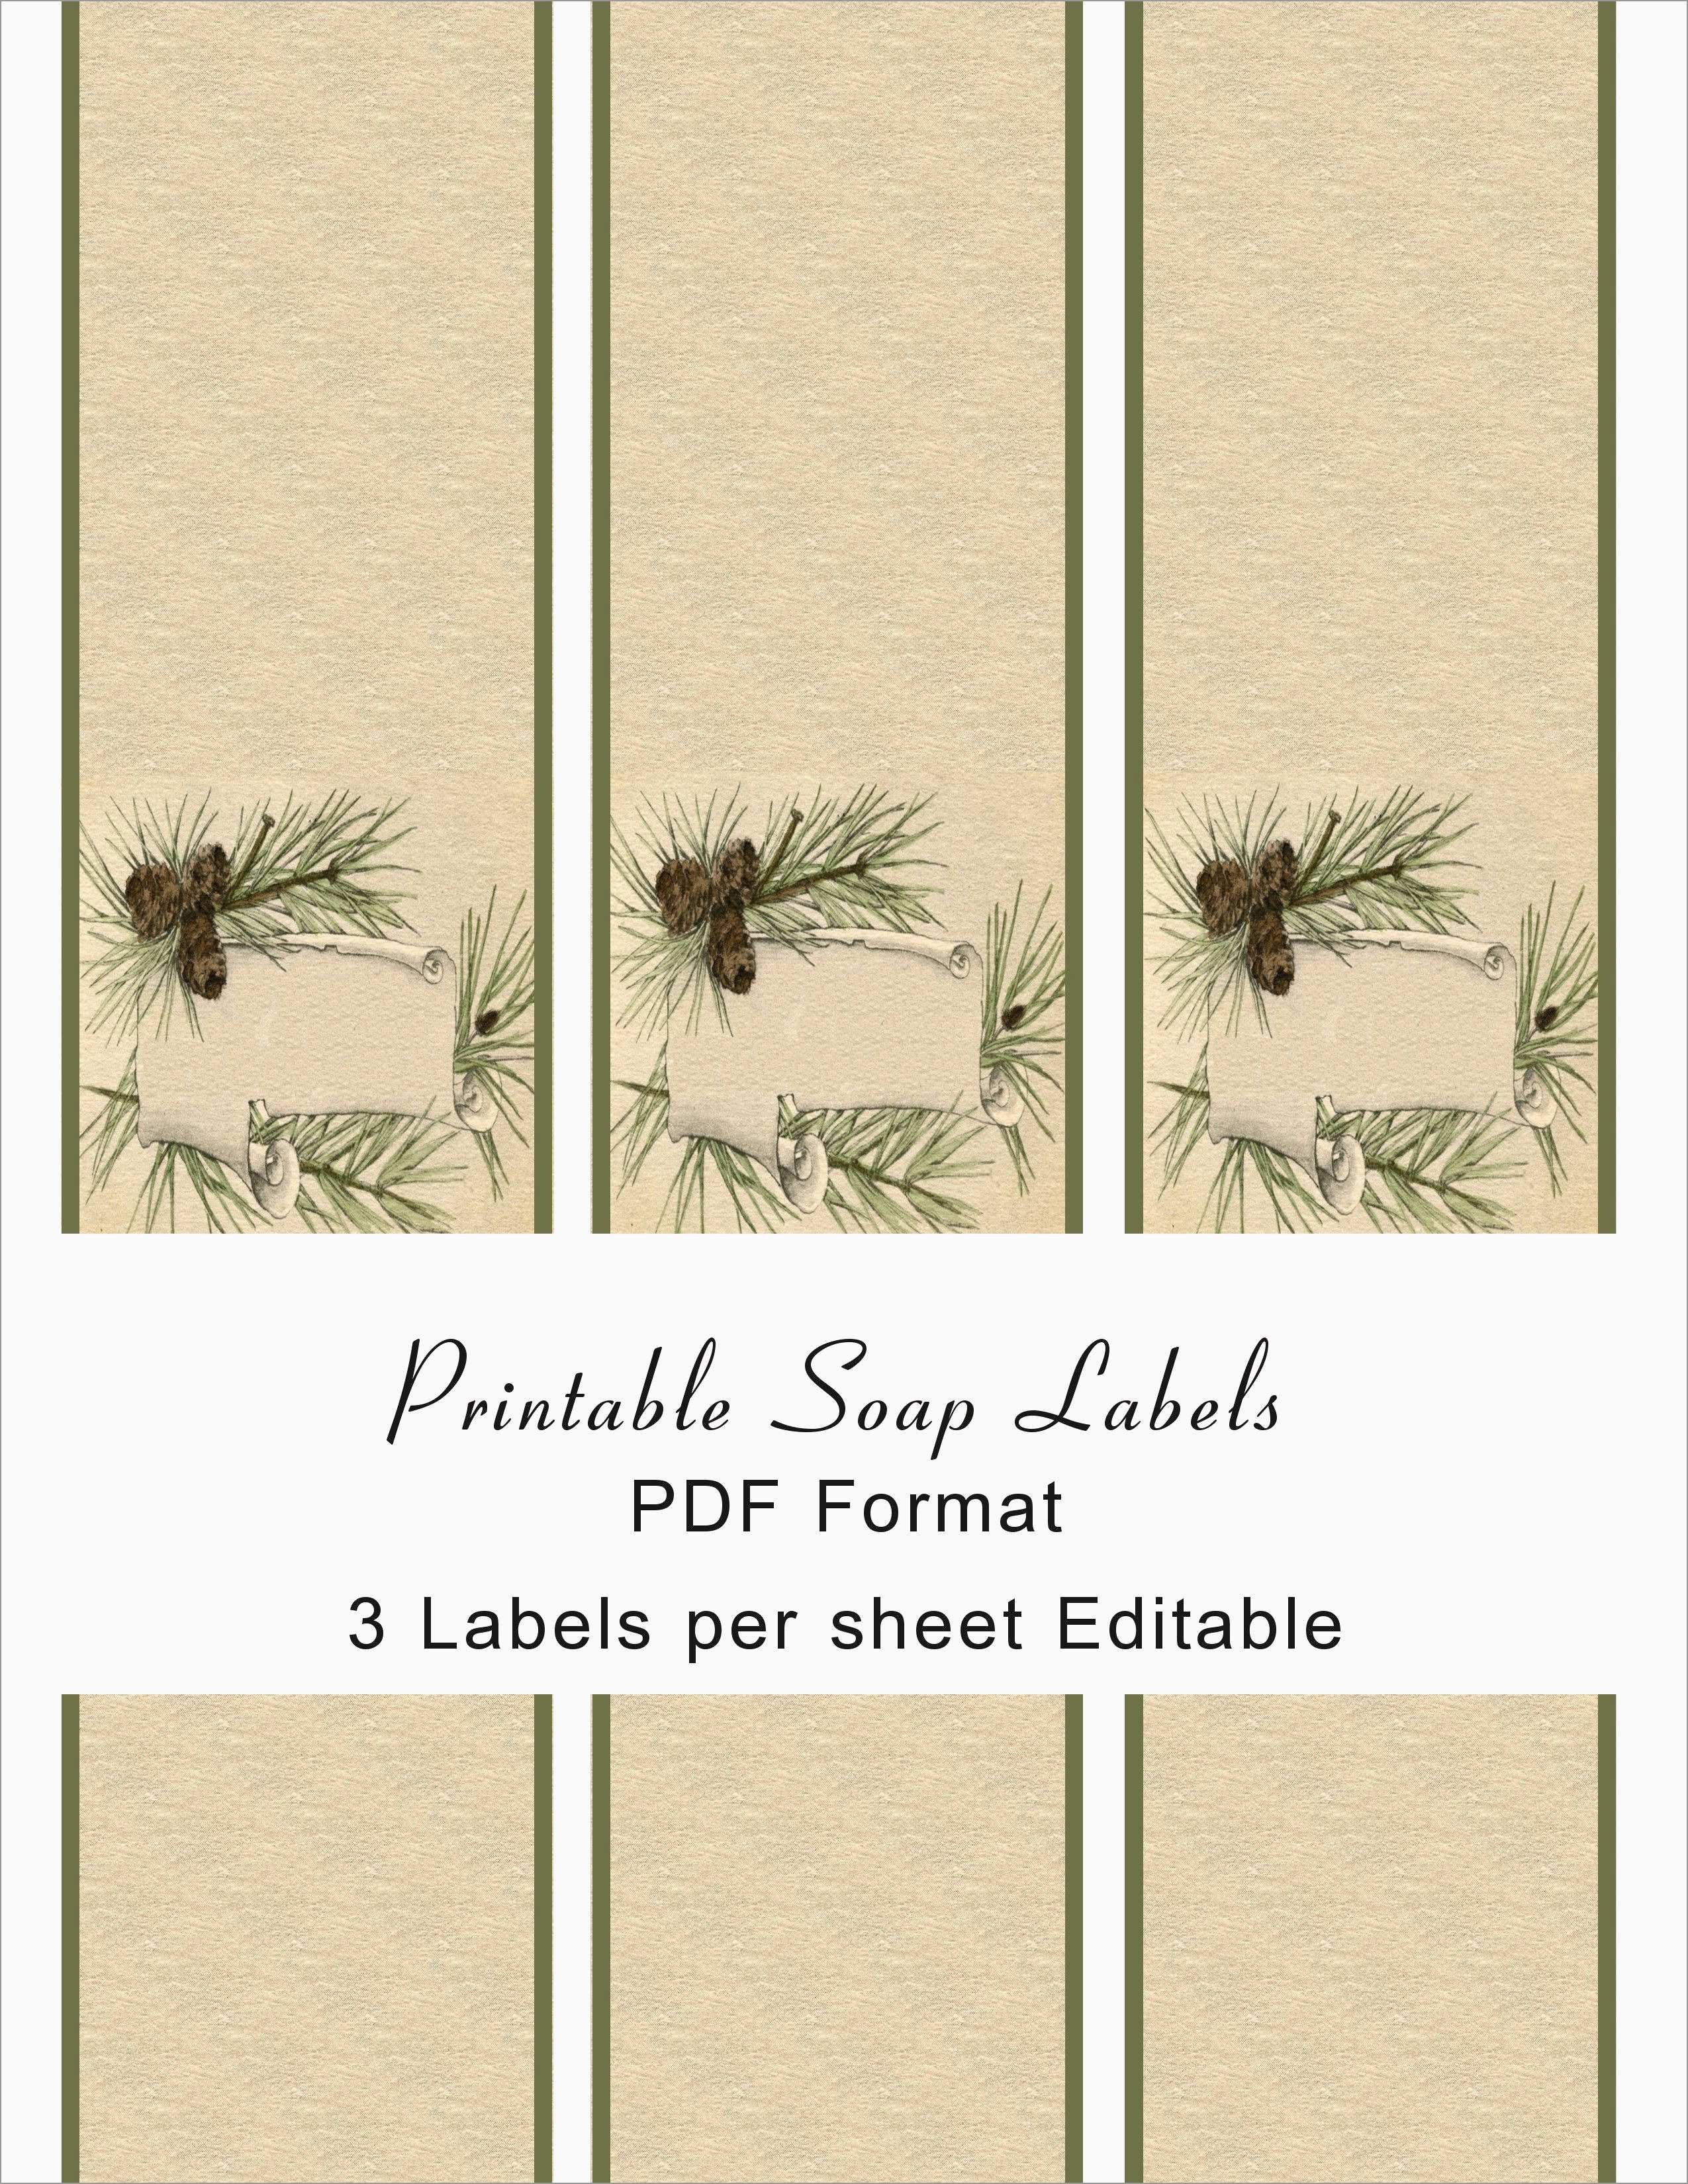 Free Soap Label Templates Awesome Printable Soap Labels  Best Of Inside Free Printable Soap Label Templates